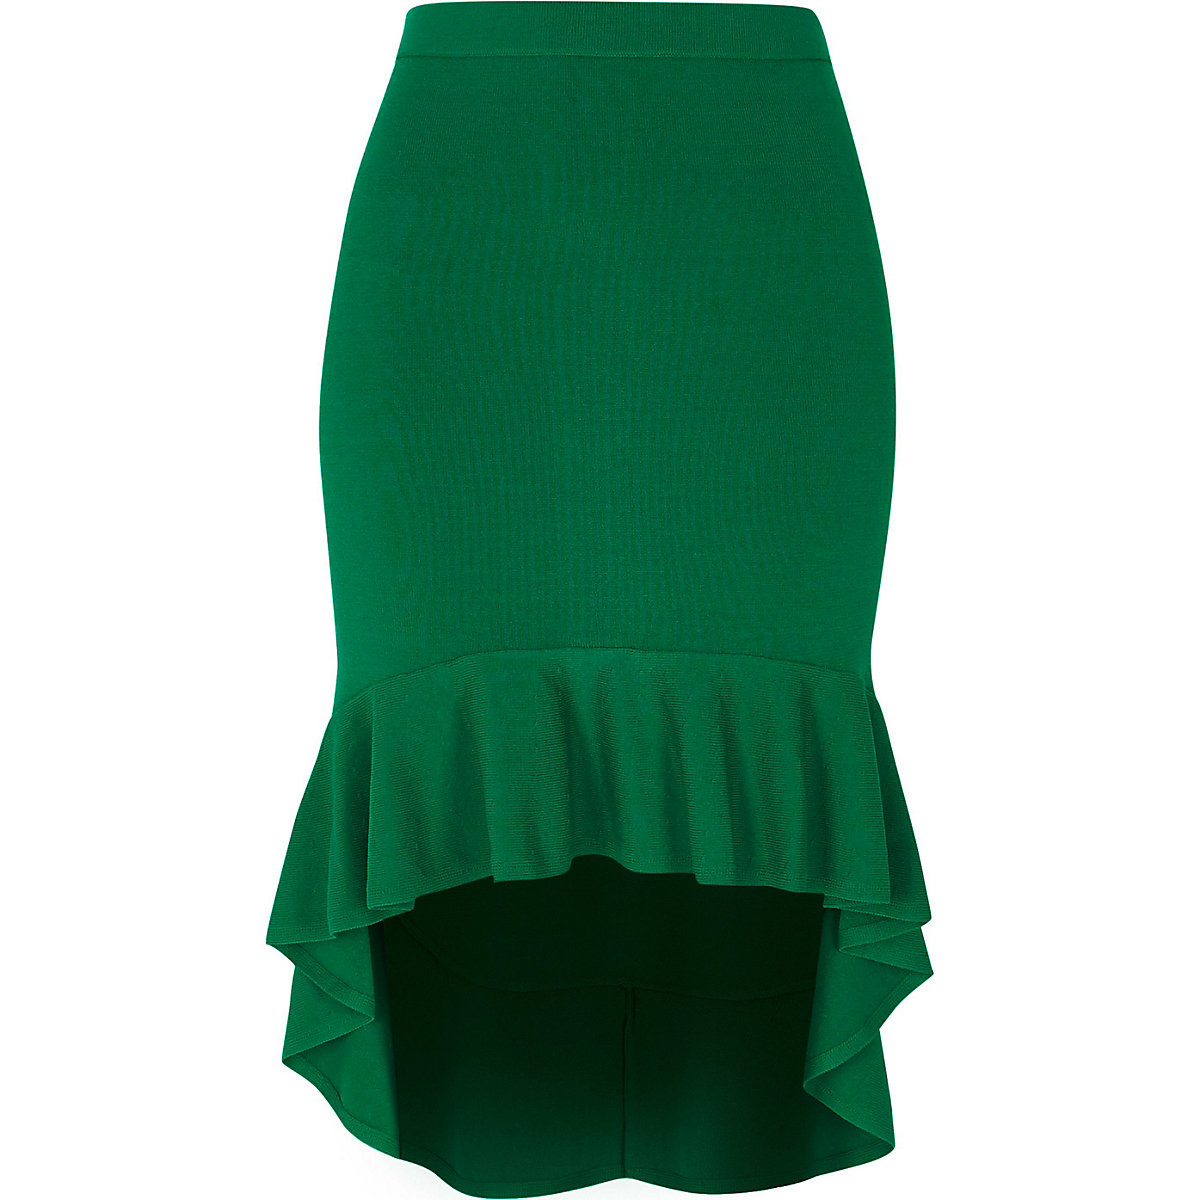 Green knit frill hem pencil skirt